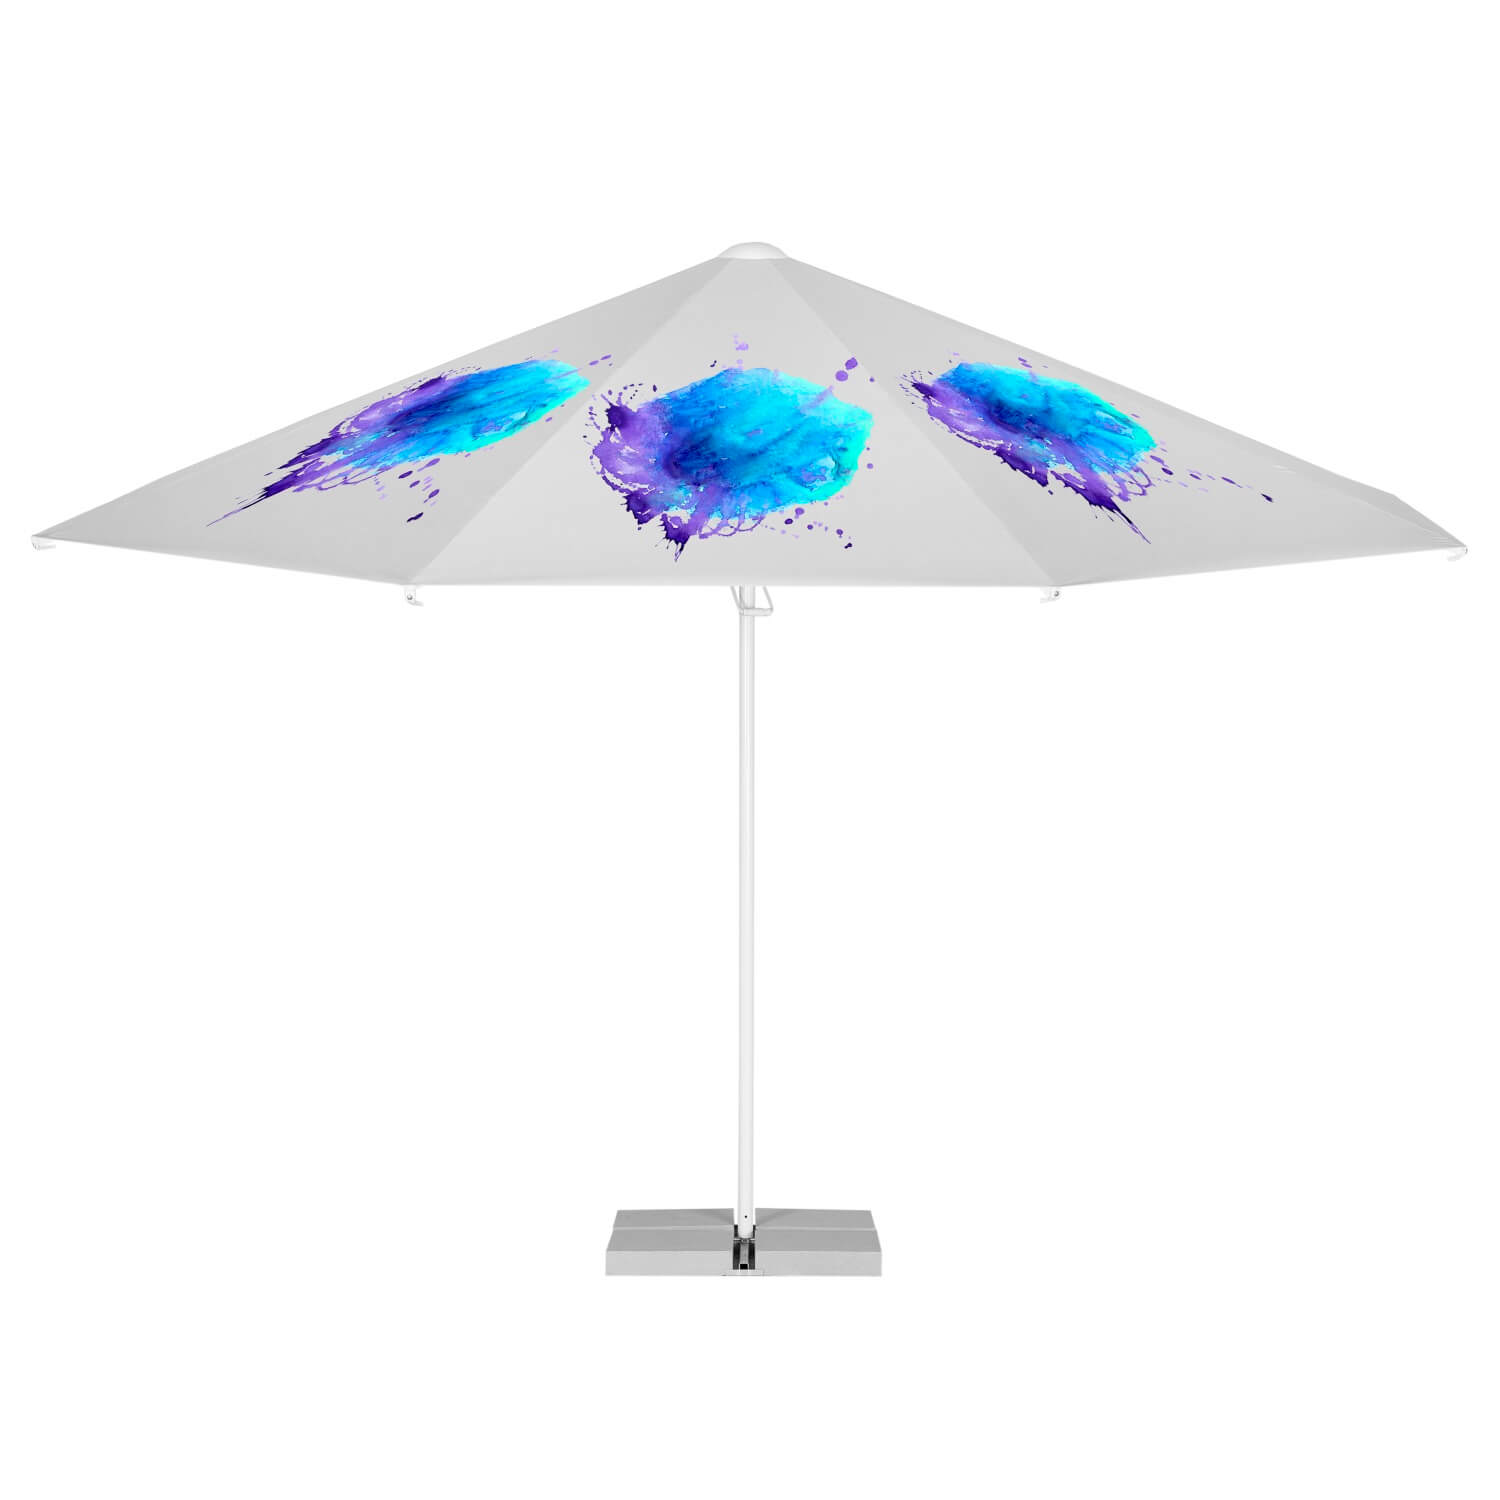 9. Easy Up Parasol Octagonal 4 m